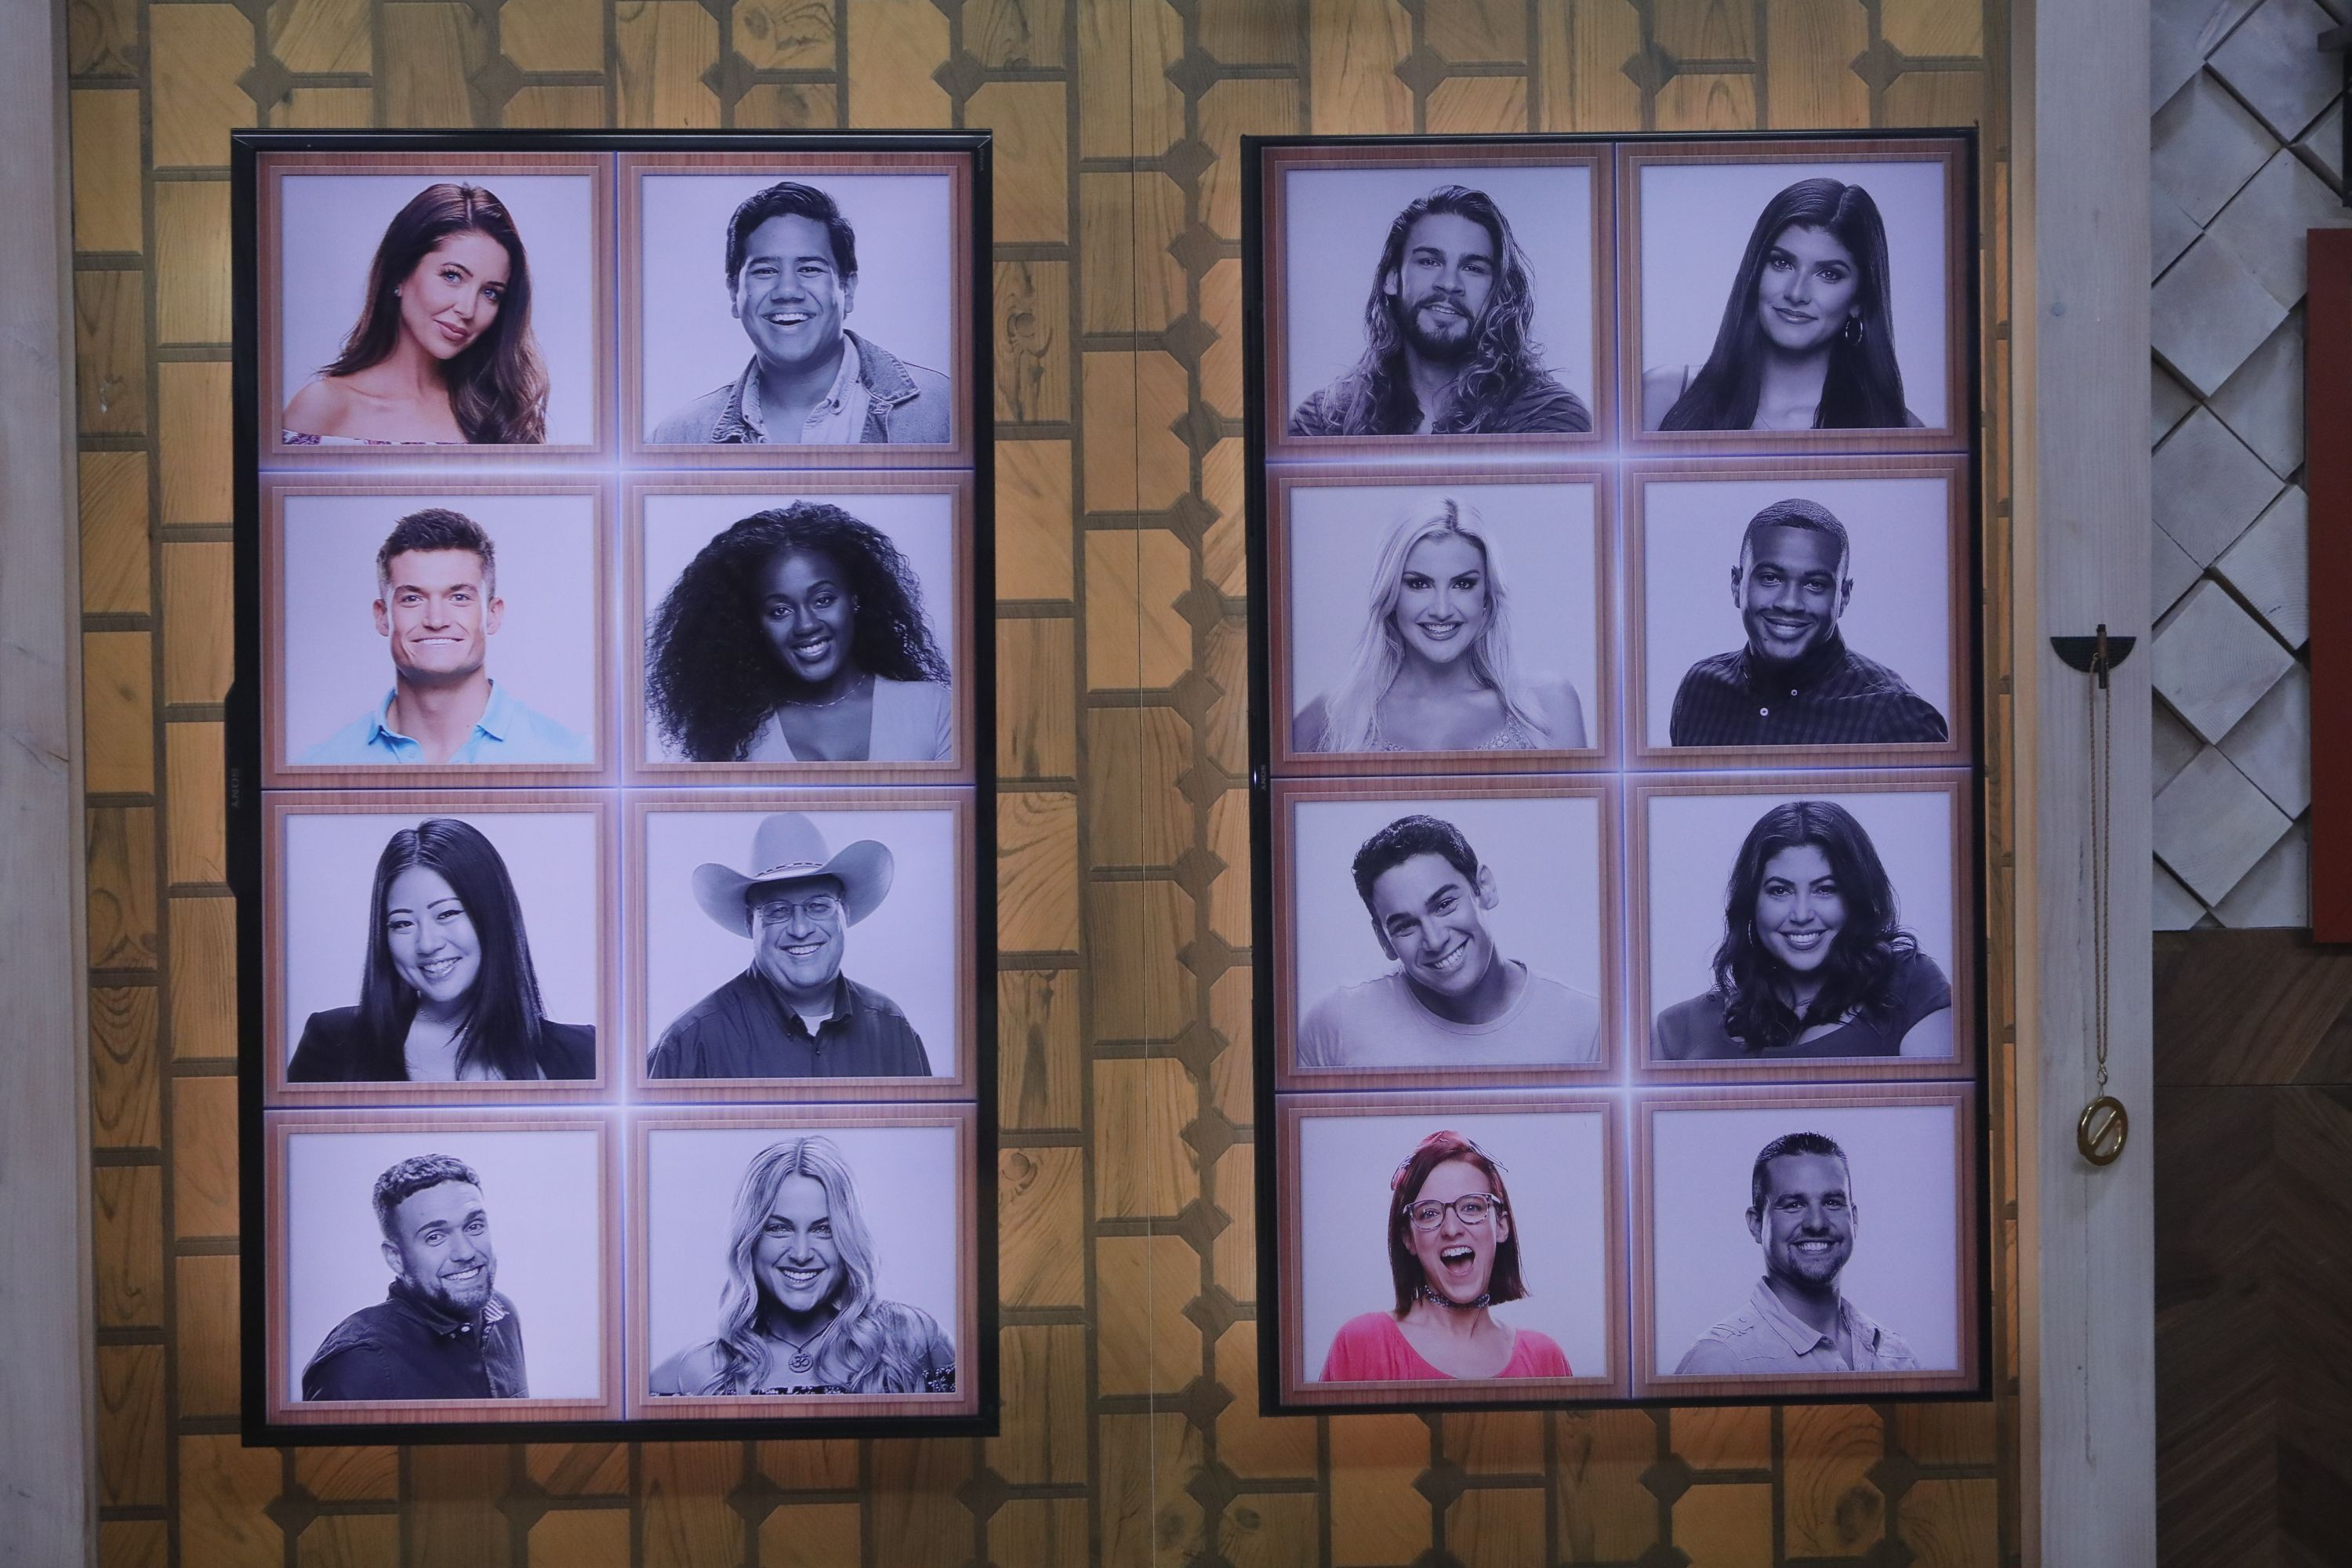 Big Brother 21: How to Vote for America's Favorite Houseguest